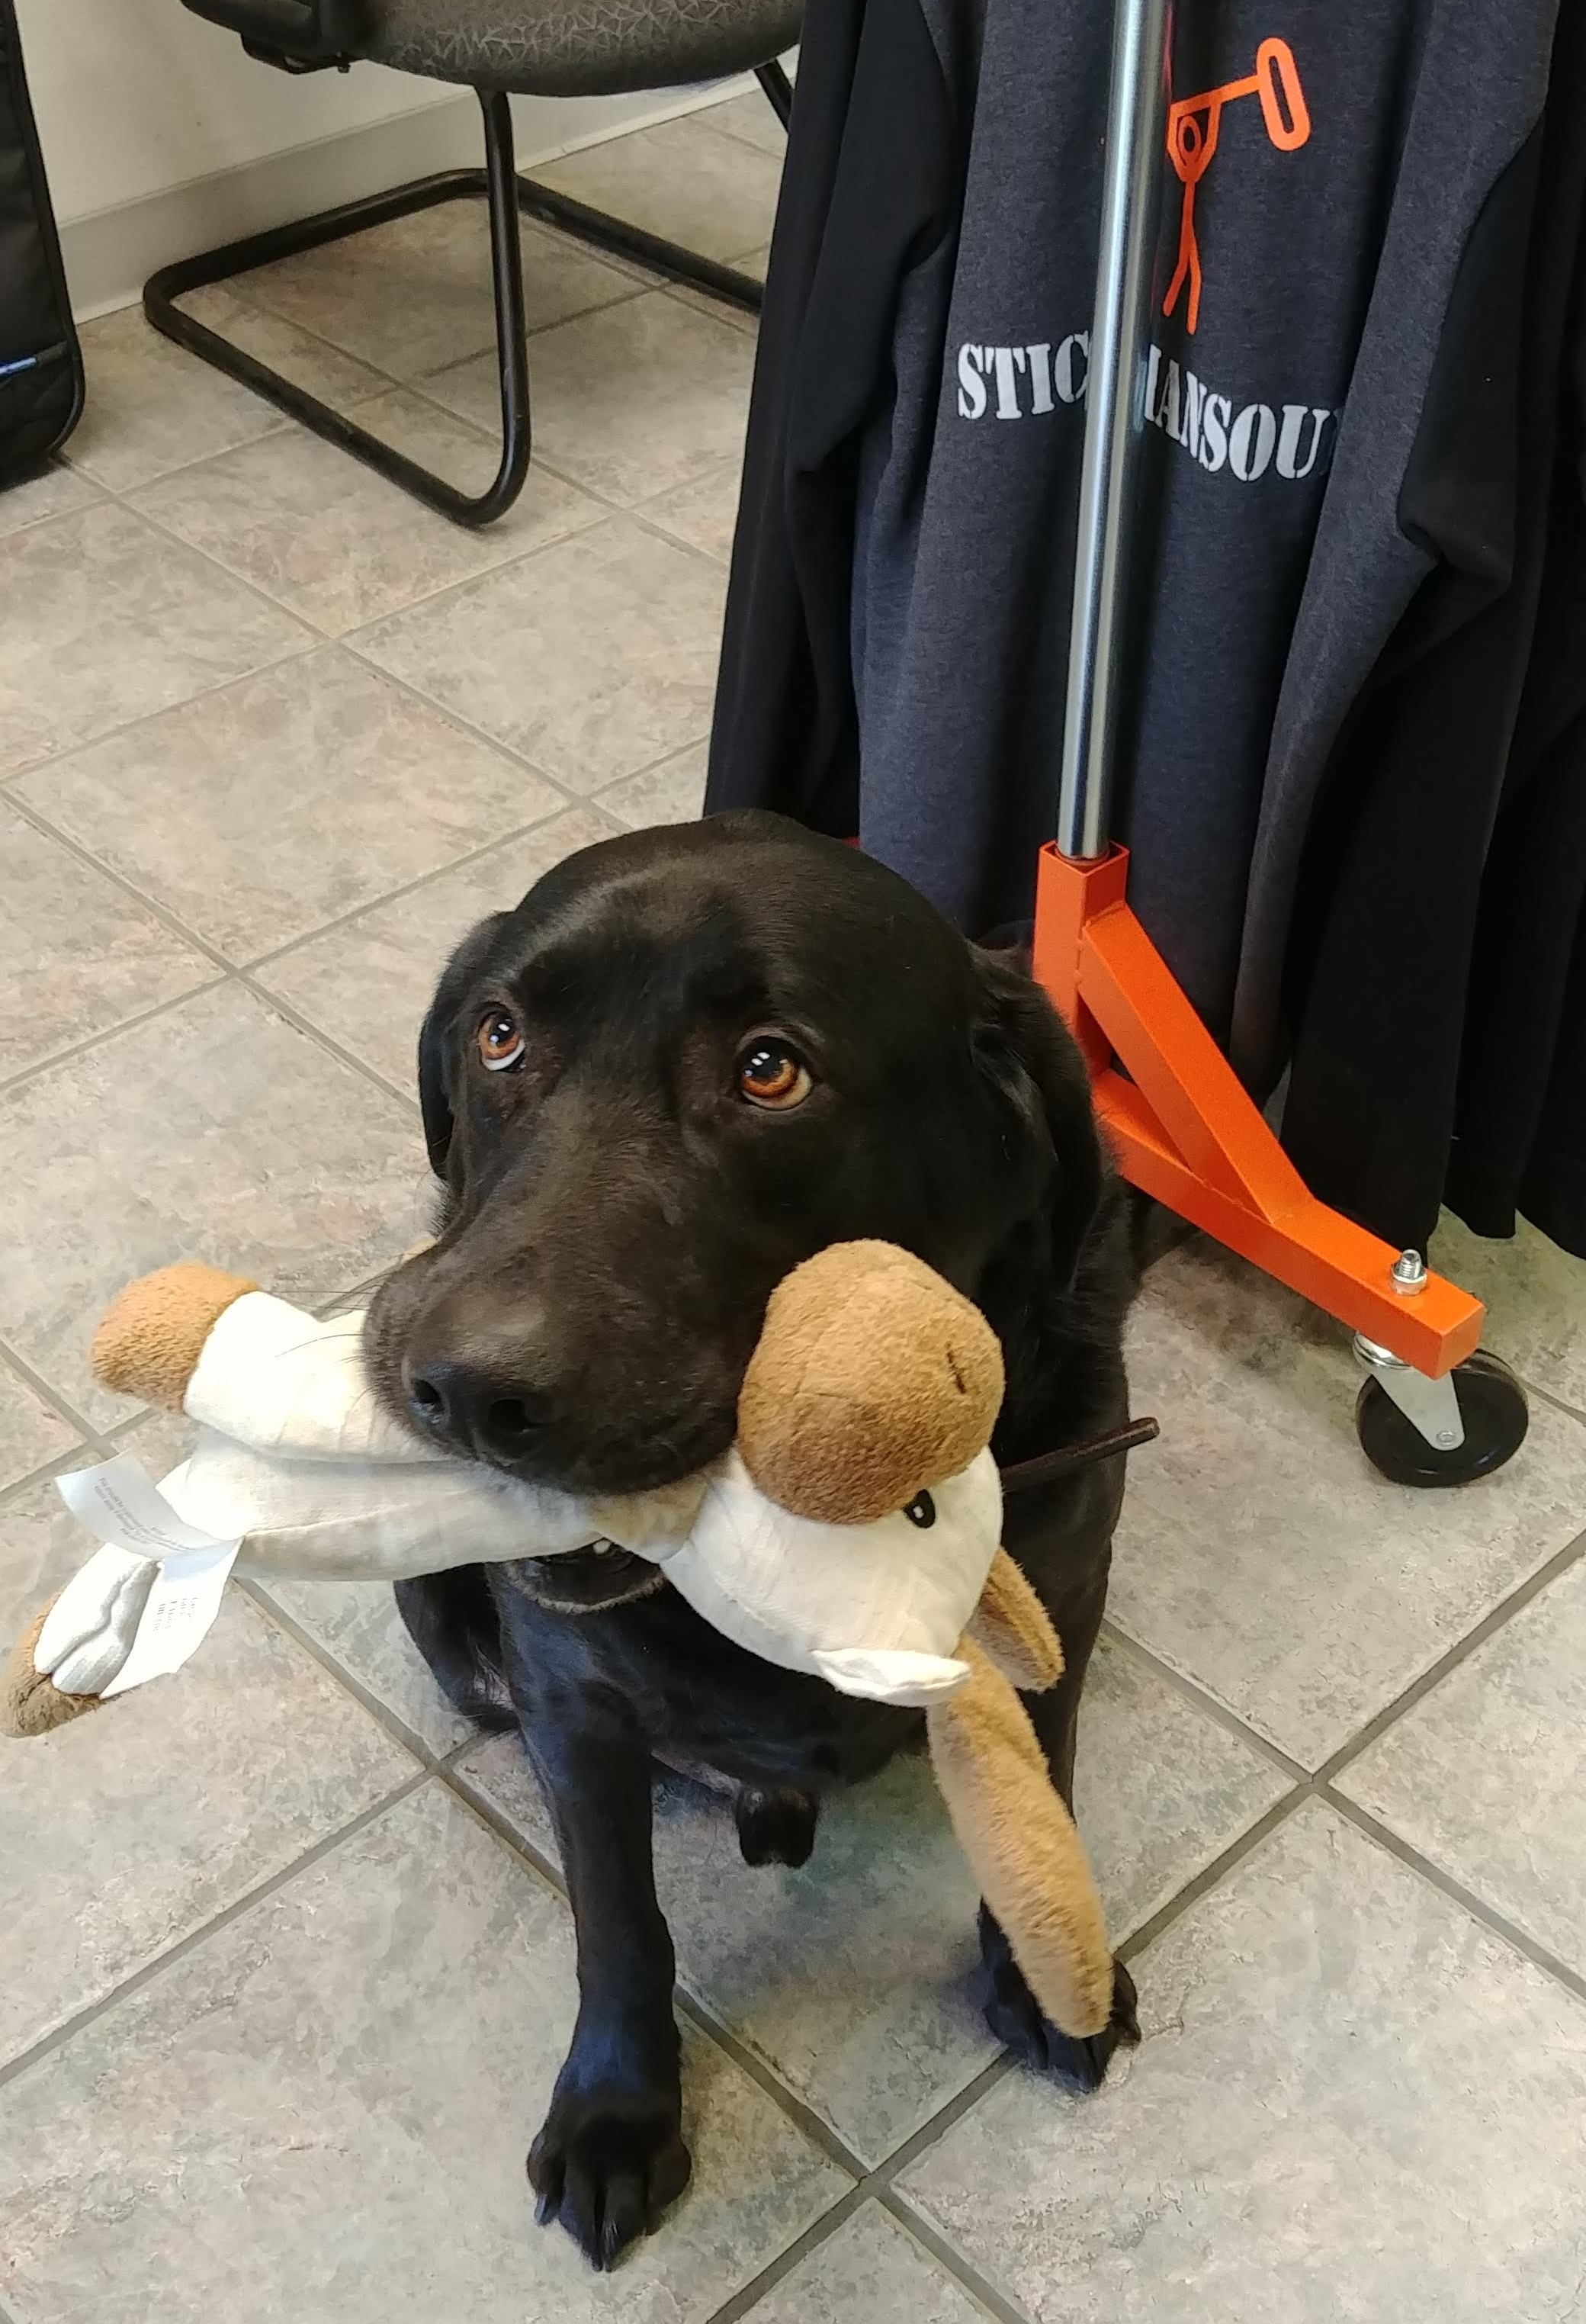 Bonus Newsletter Photo! This is Jack and his Moose. John came to pick up gear and brought his four legged friend in to visit. It was a good day!